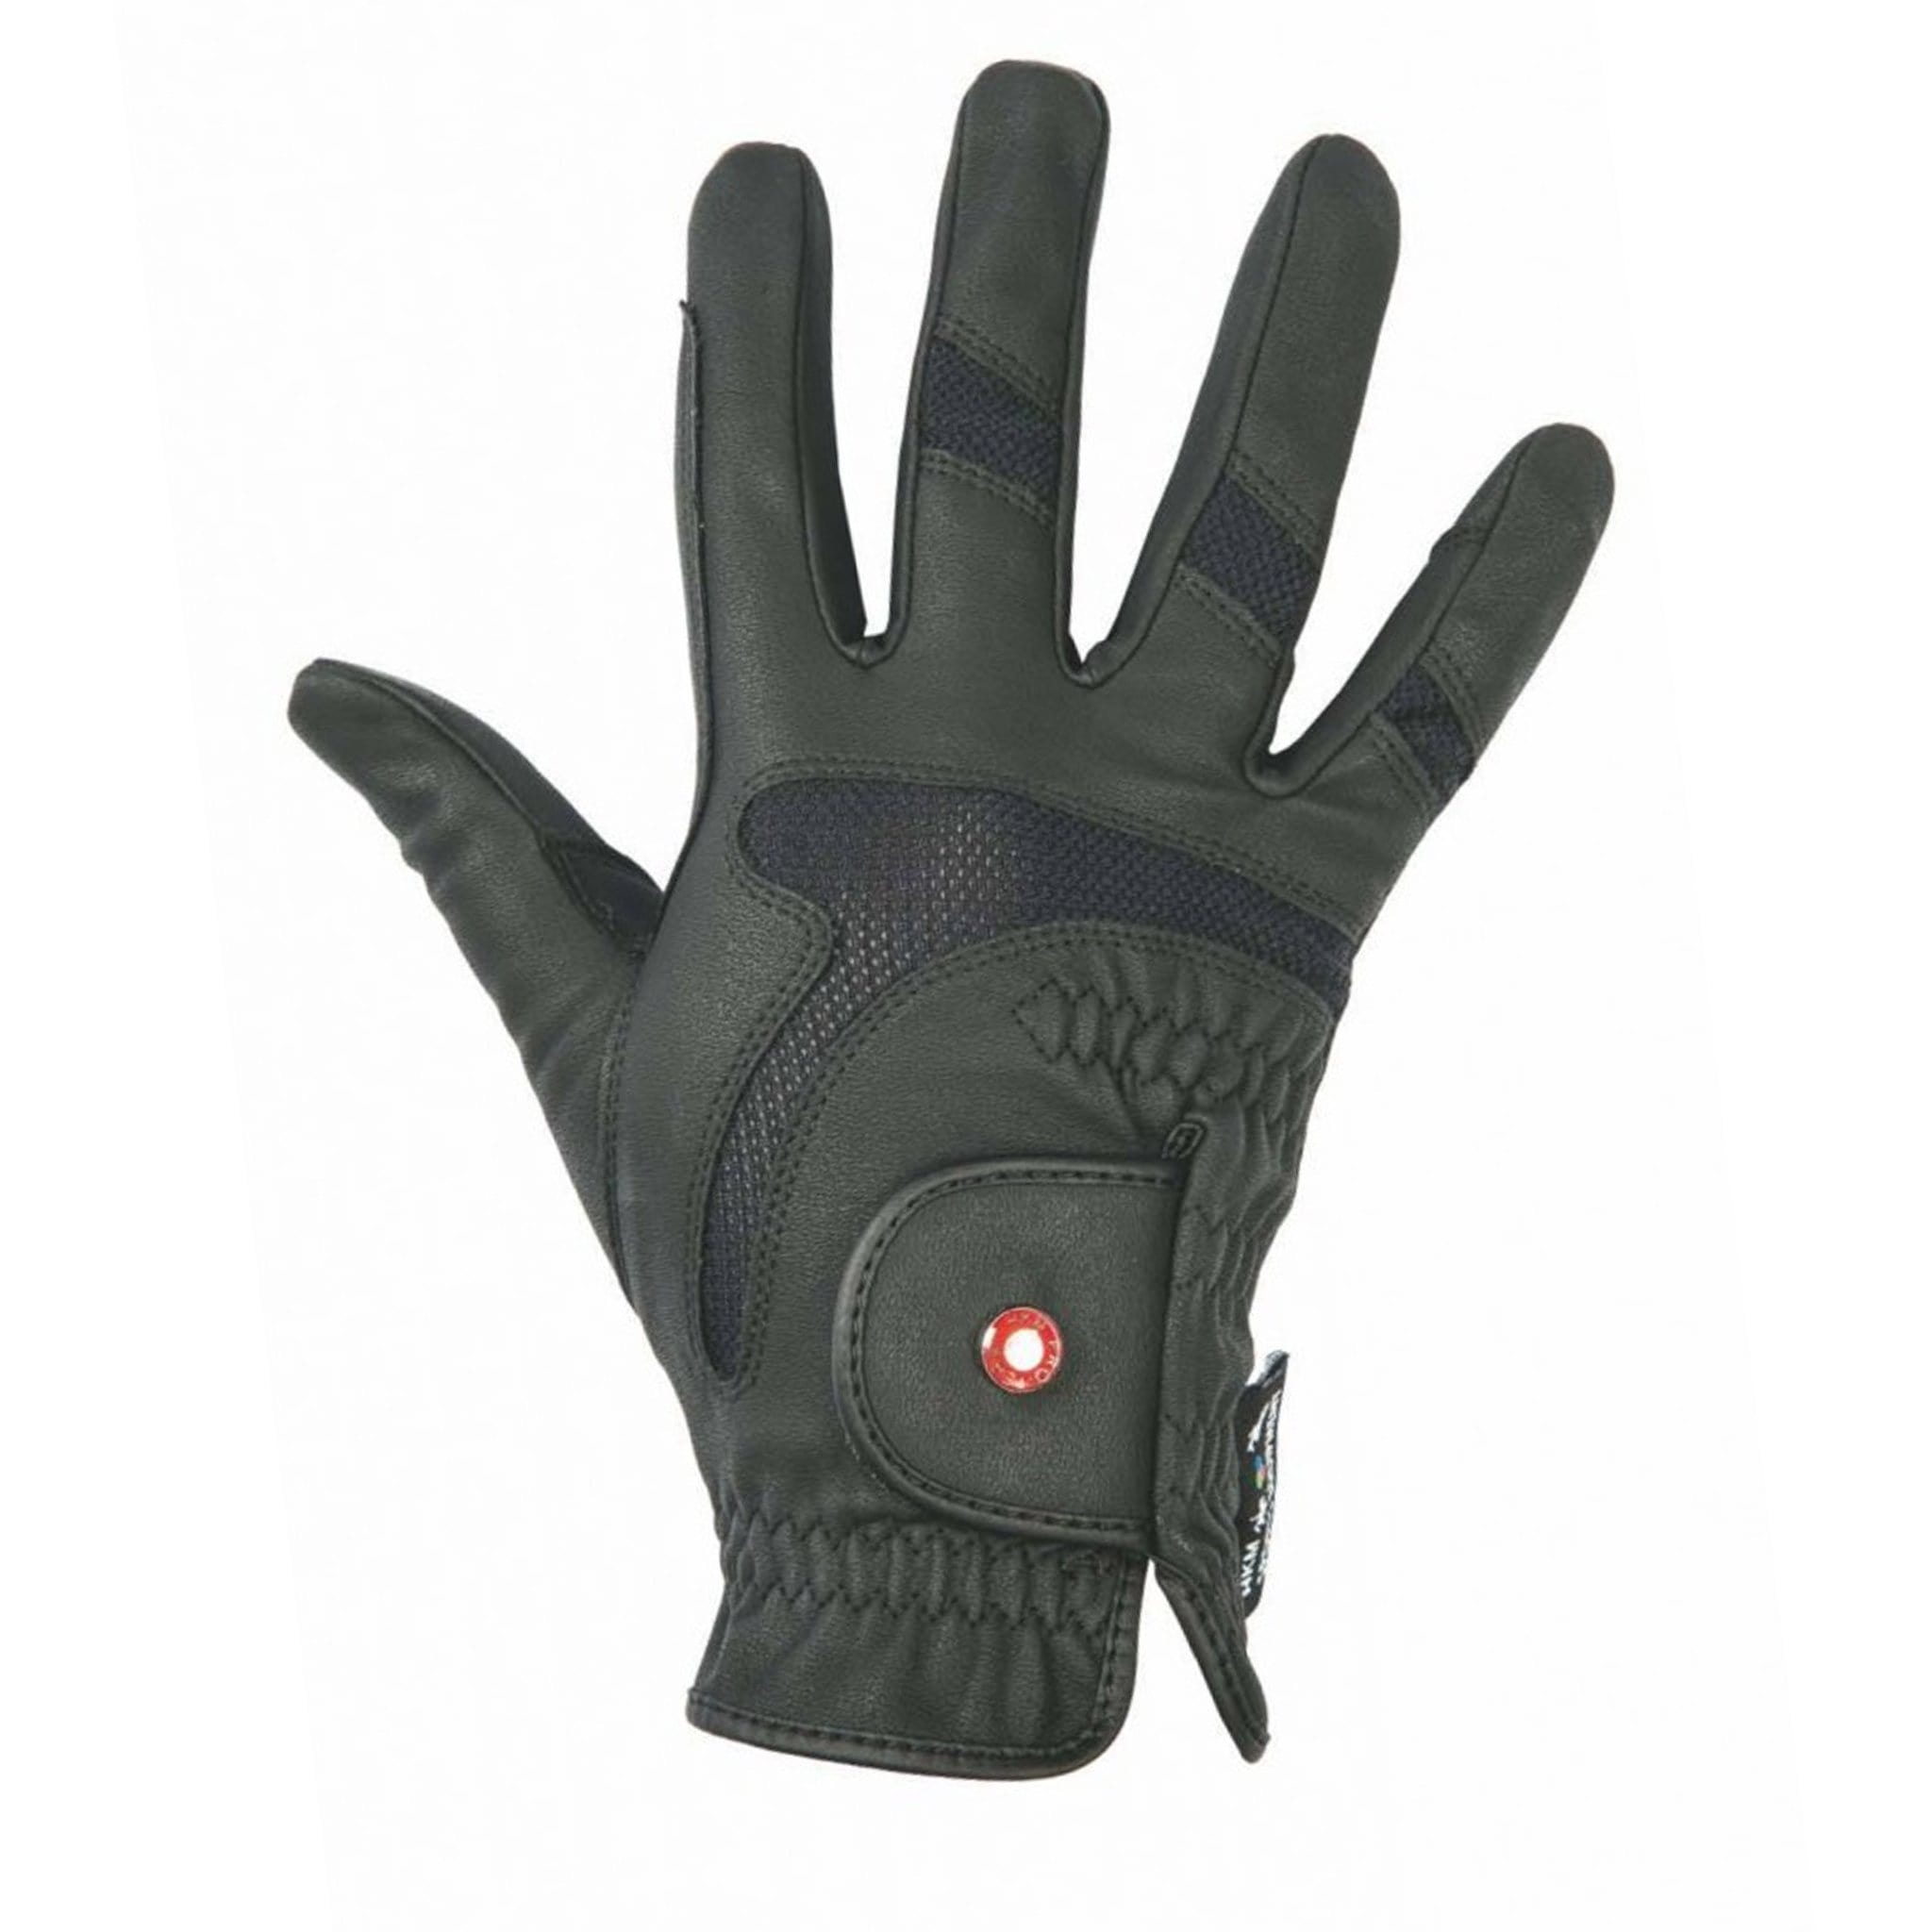 HKM Professional Air Mesh Riding Gloves Black 6885